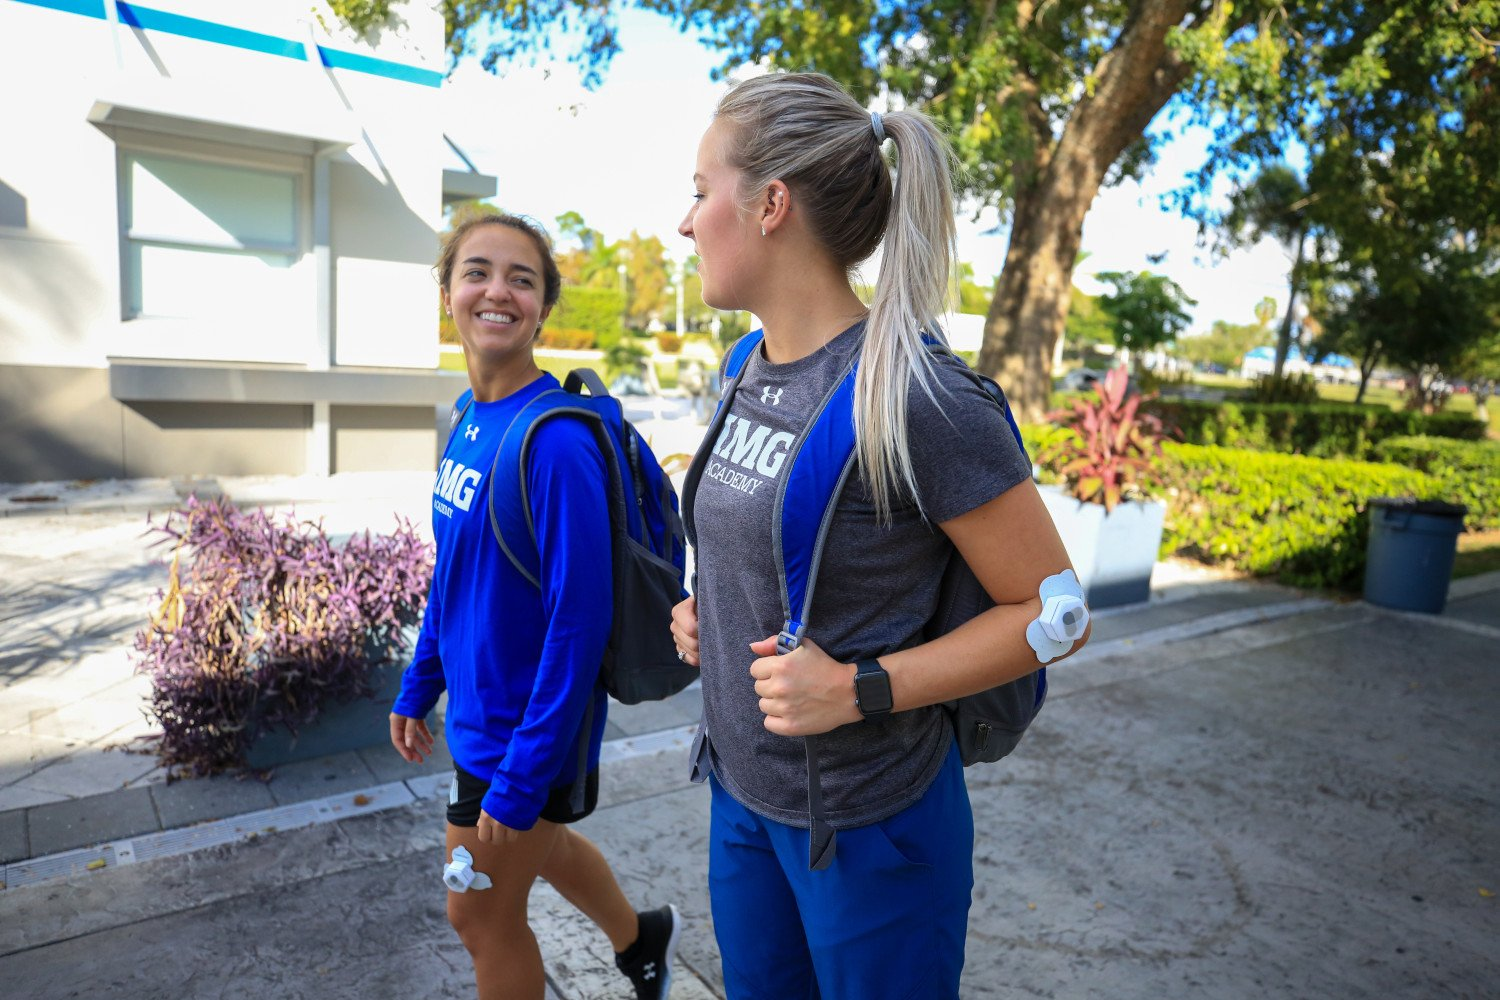 two IMG Academy students demonstrate carewear products | IMGAcademy.com